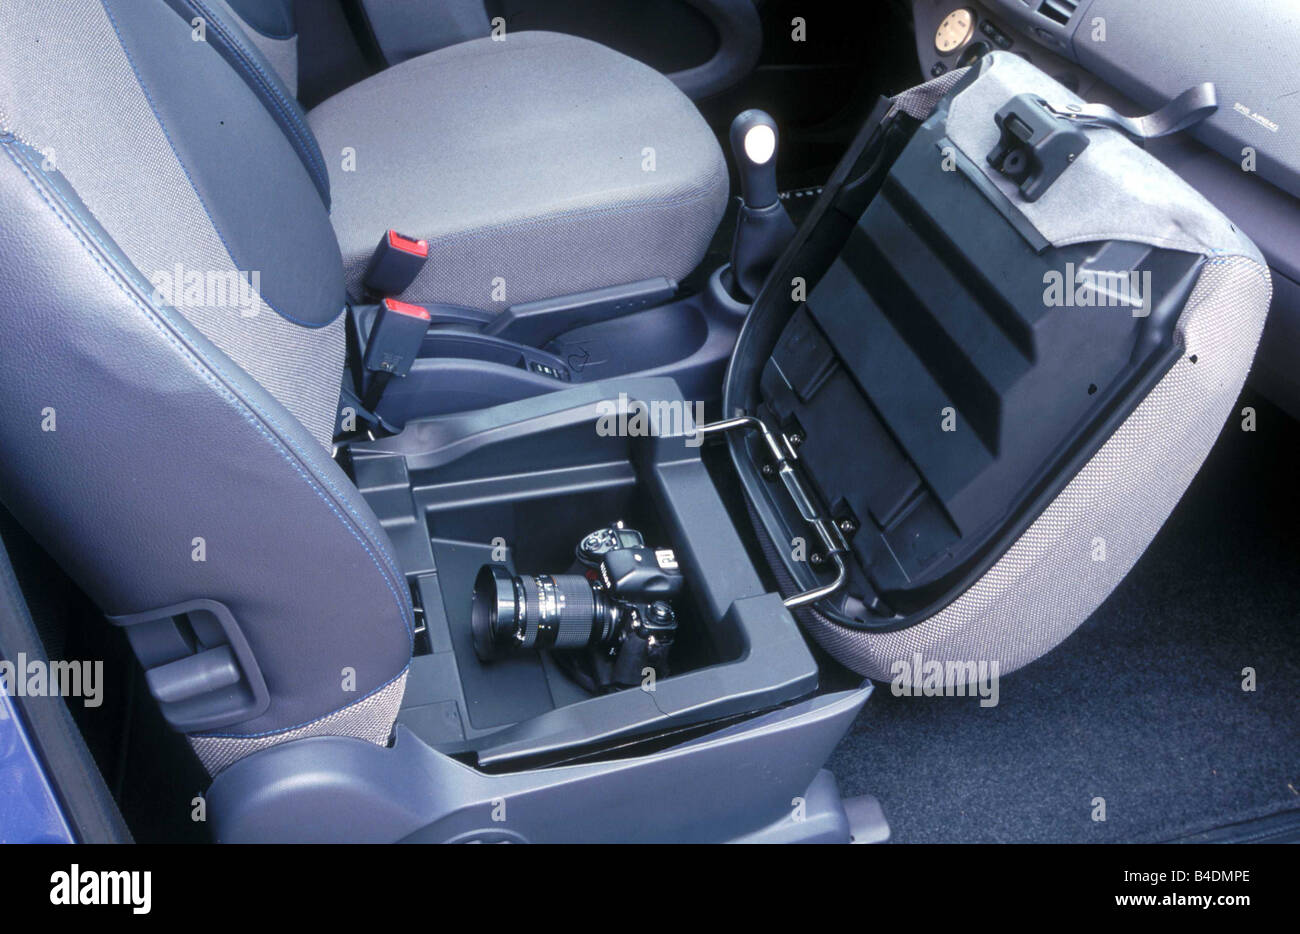 Car Nissan Micra Limousine Miniapprox S Model Year 2002 Blue Stock Photo Alamy